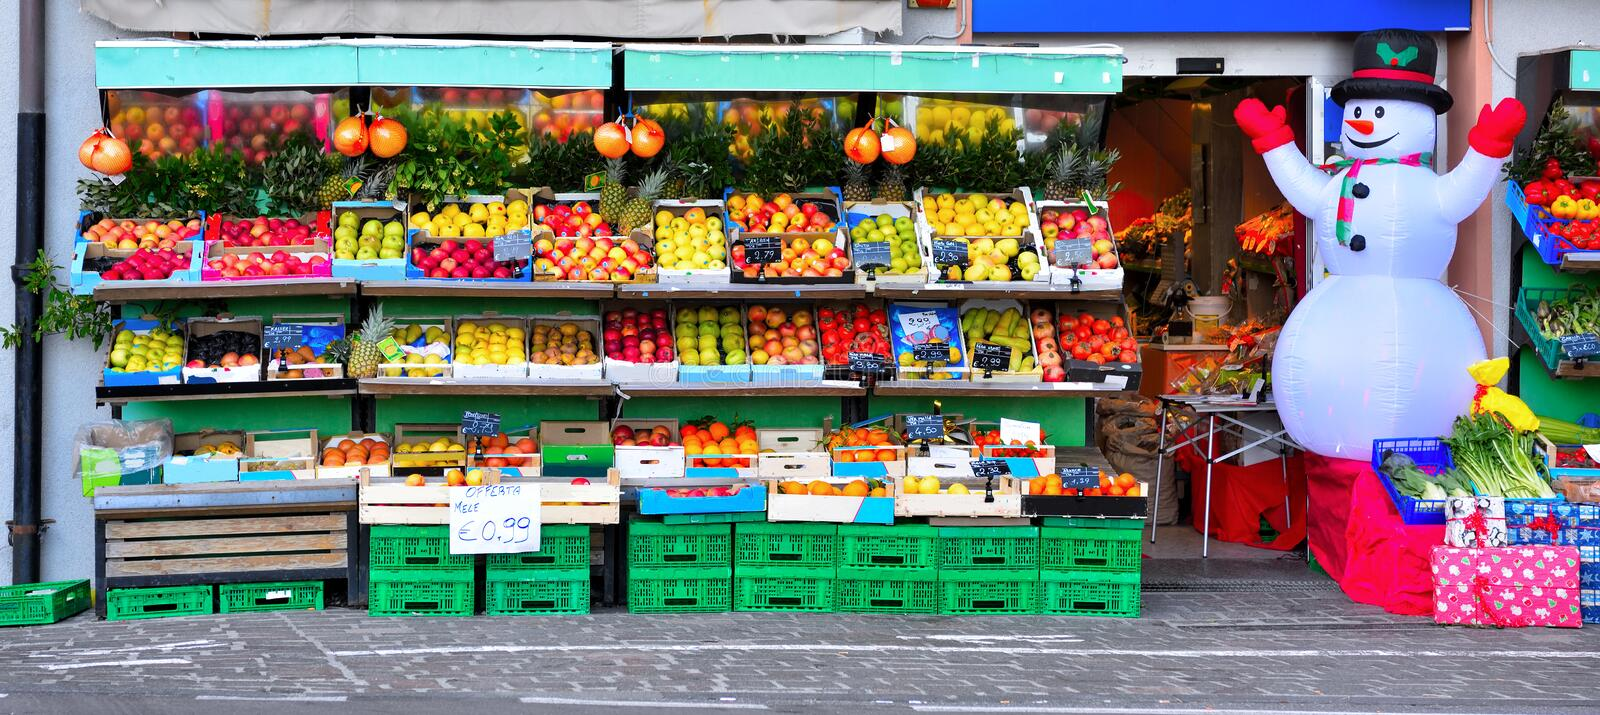 Fruit and vegetable shop royalty free stock photography